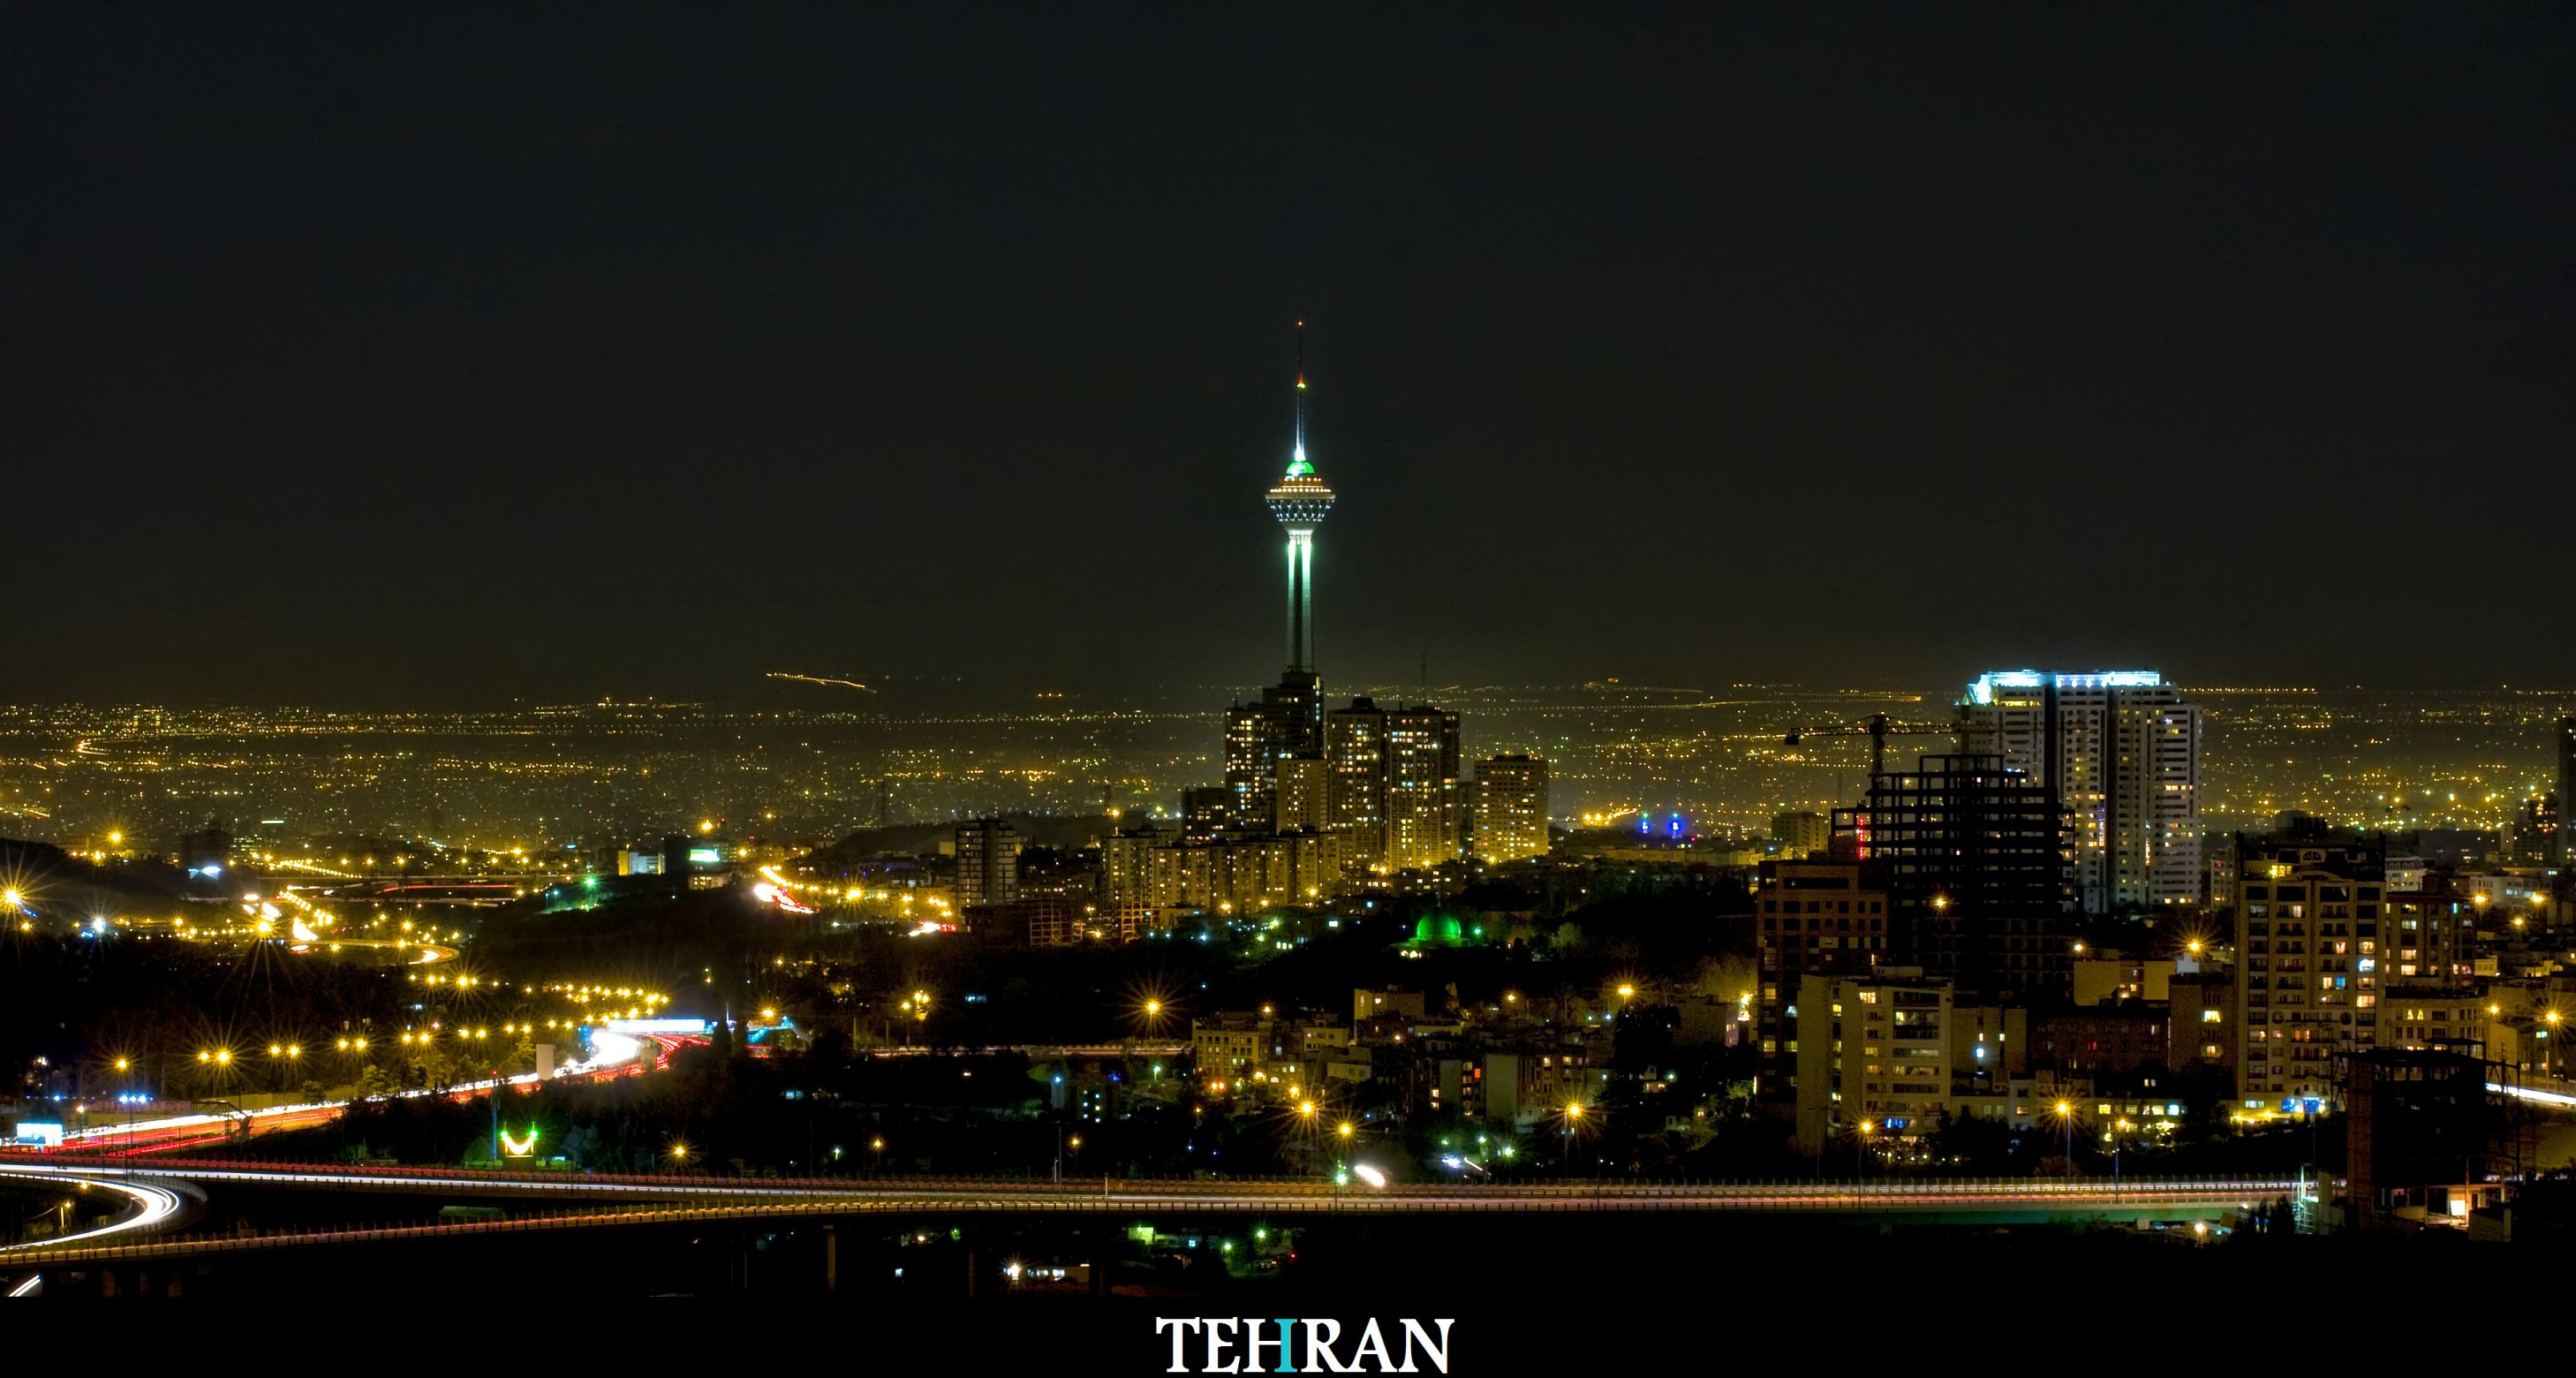 tehran night investservices.ir